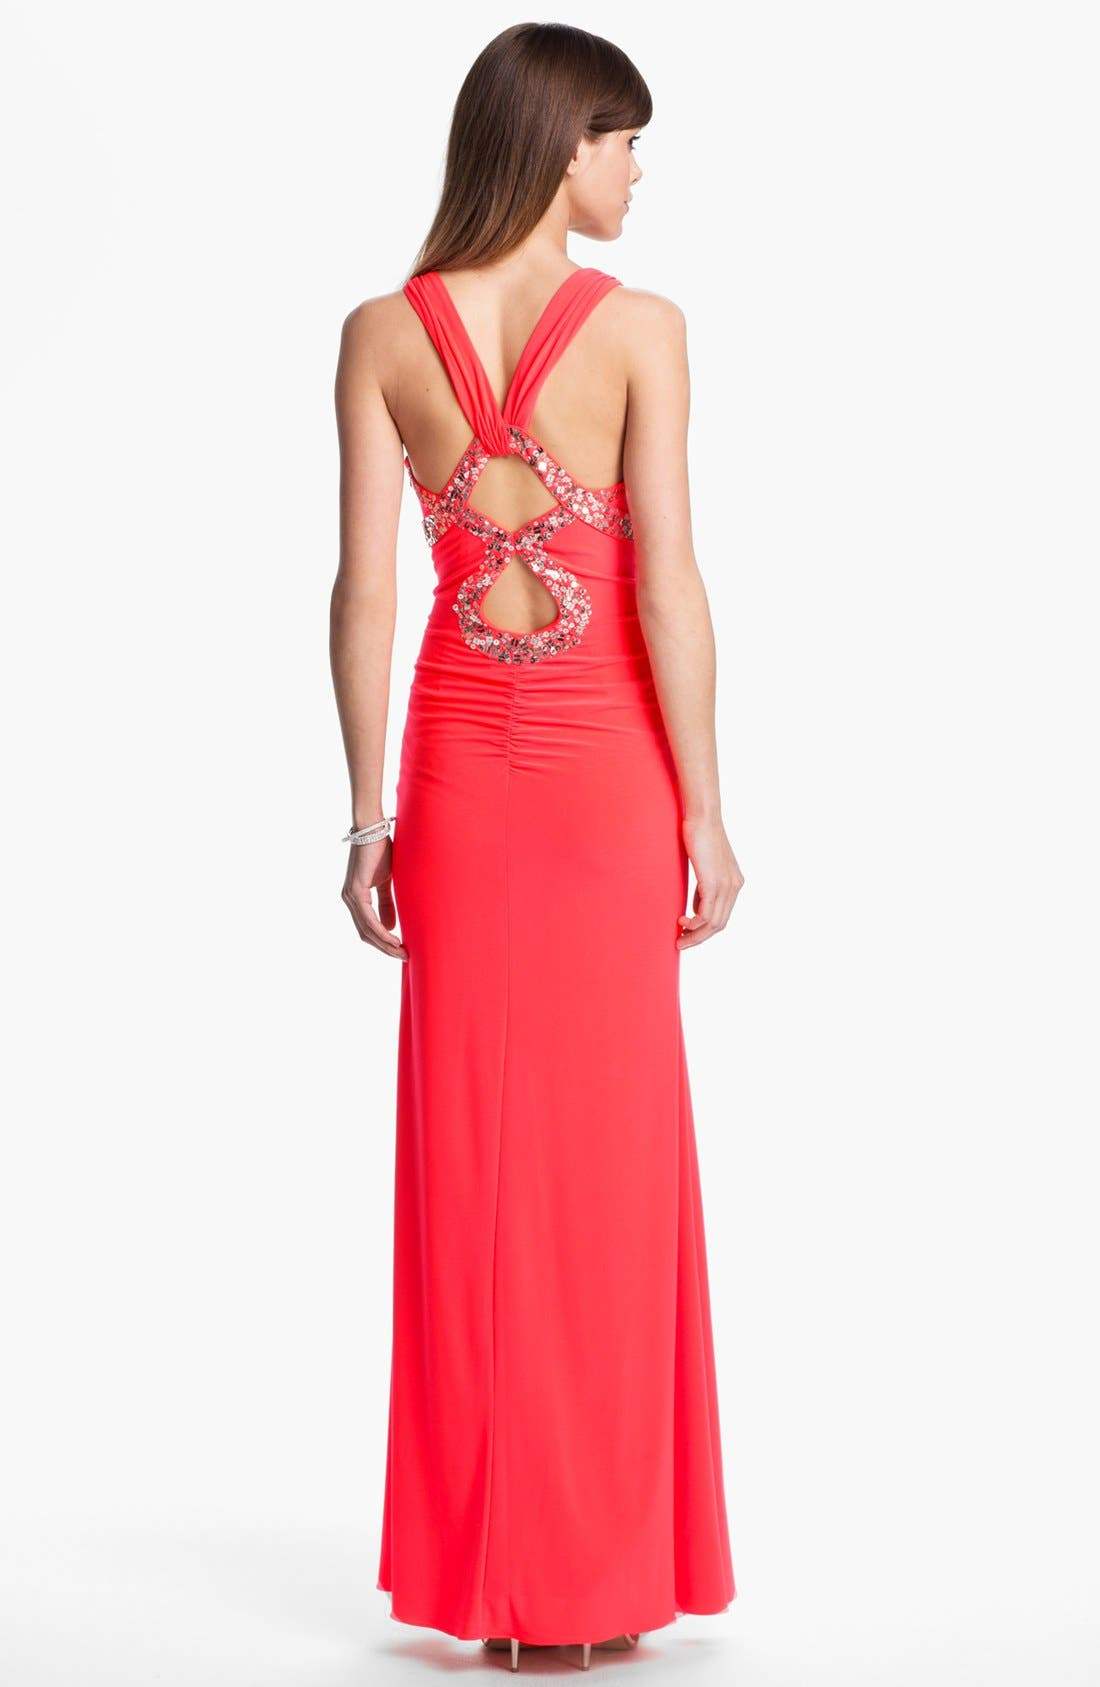 Alternate Image 2  - Test 1.26.16 - Hailey Logan Embellished Cutout Gown (Juniors) (Online Only)test. Test PICS2.0